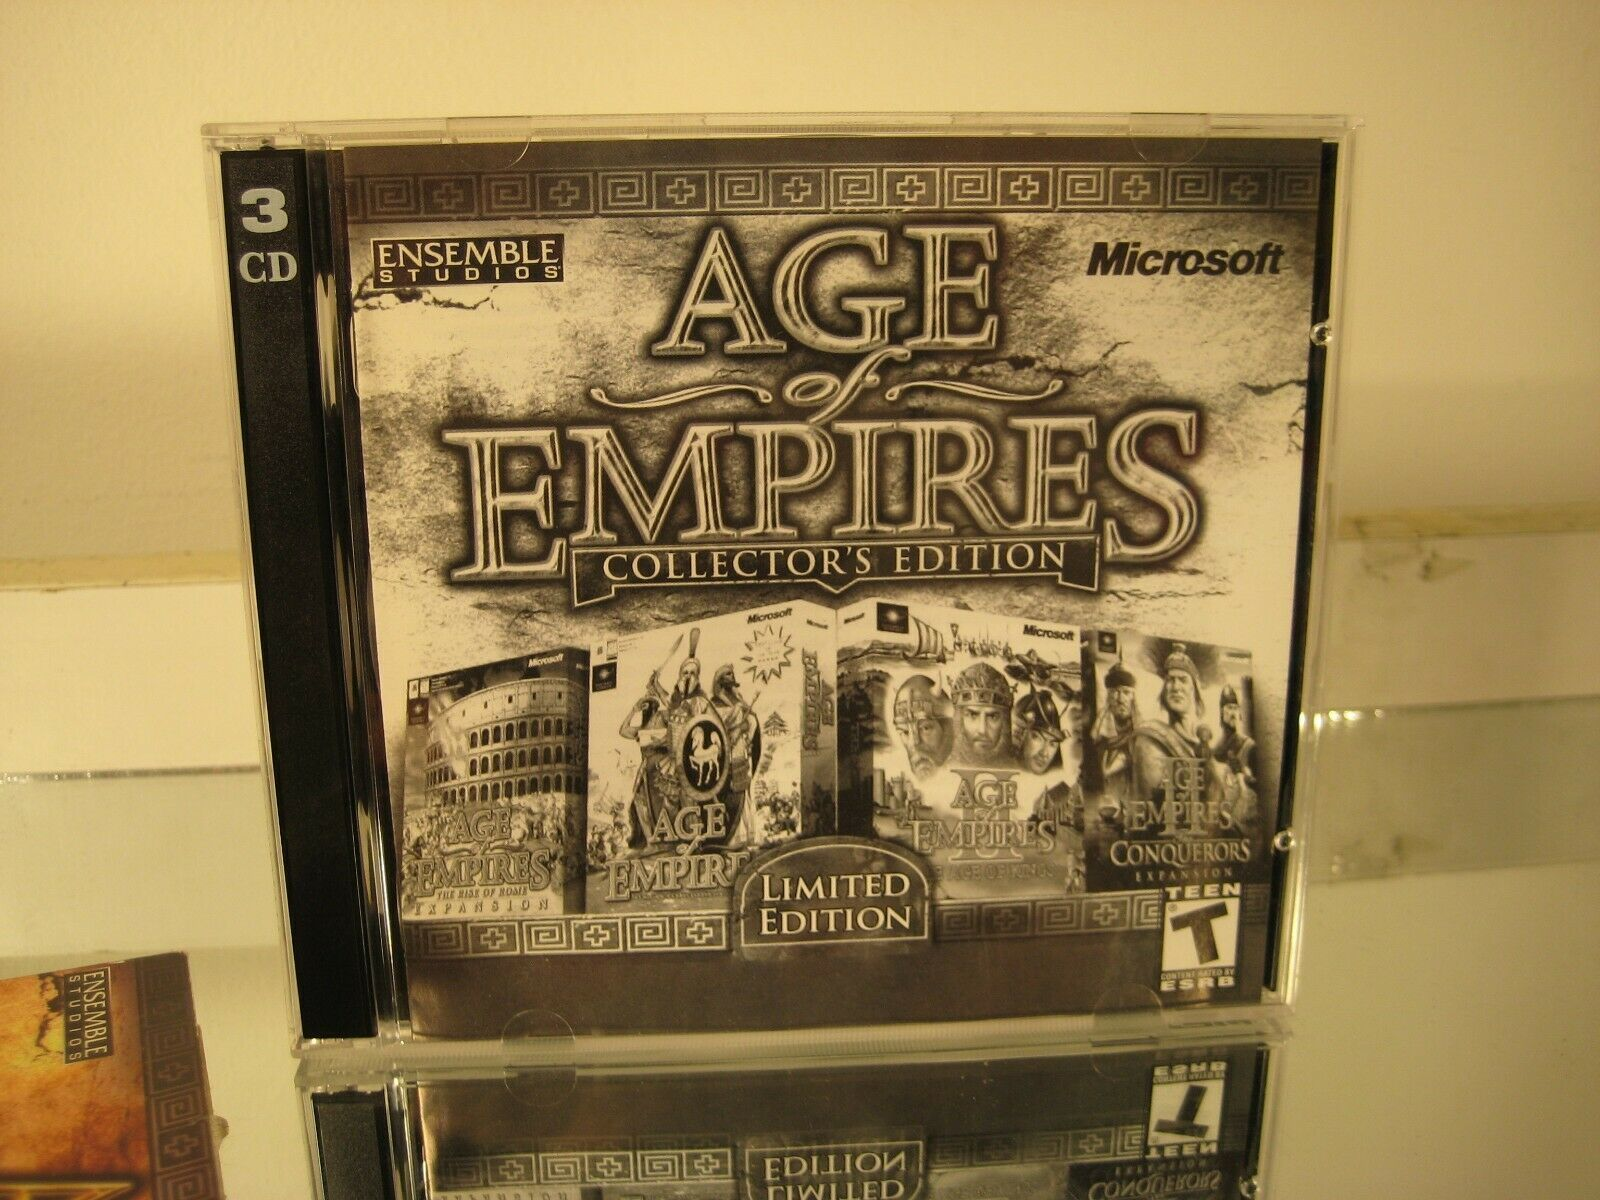 Age of Empires Collectors' Edition 2000 PC CDROM RTS Game image 3